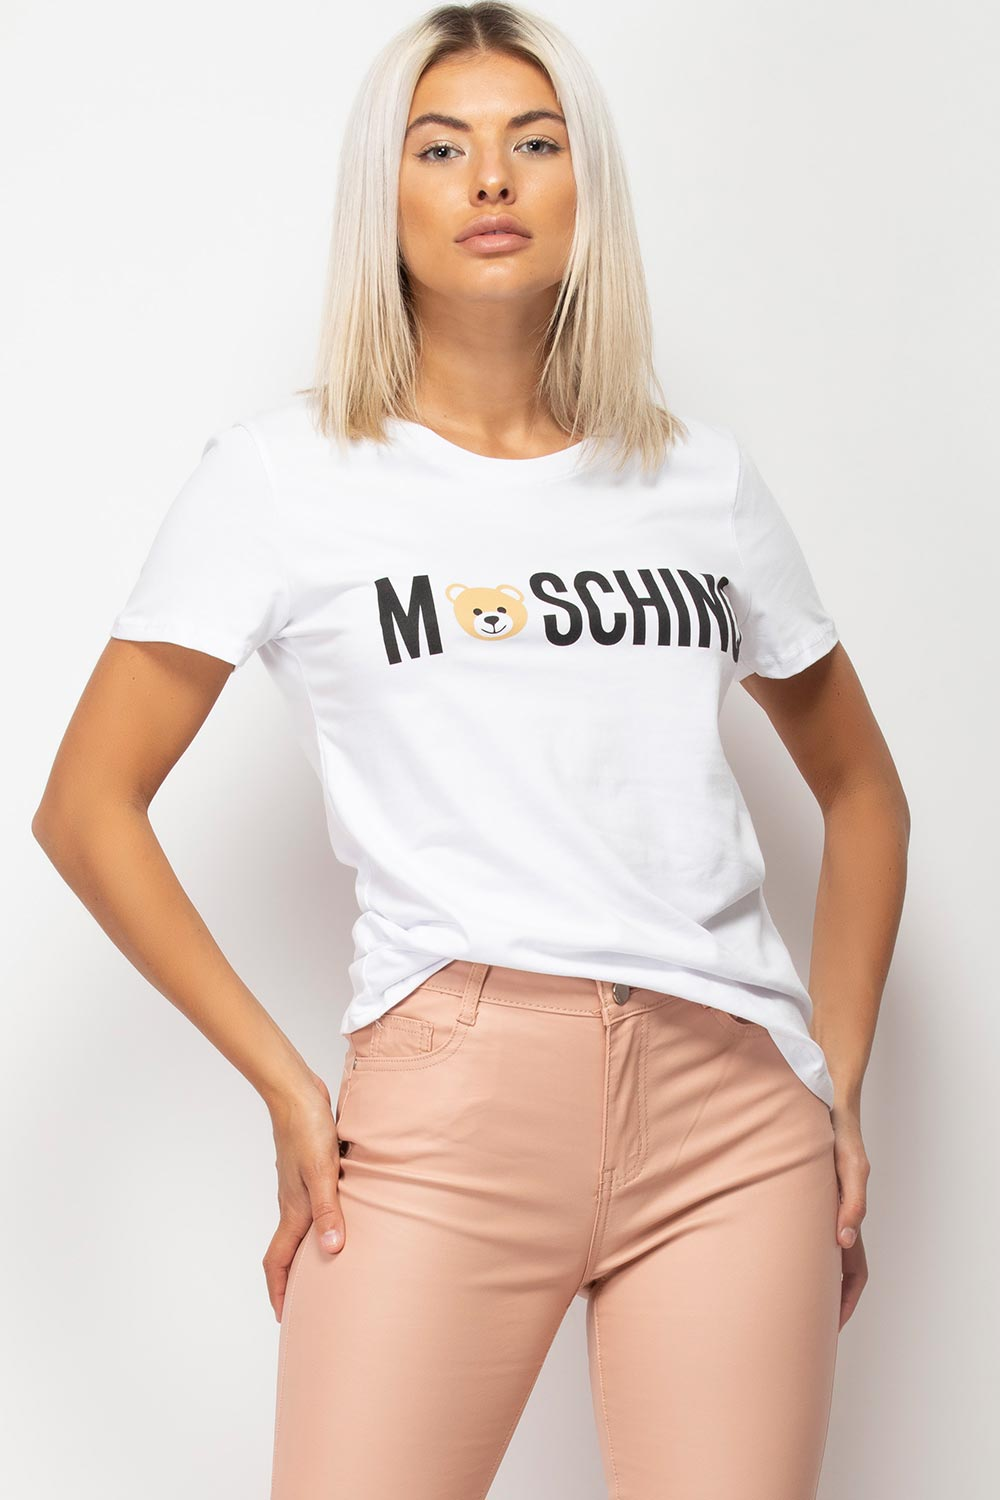 womens moschino inspired t shirt